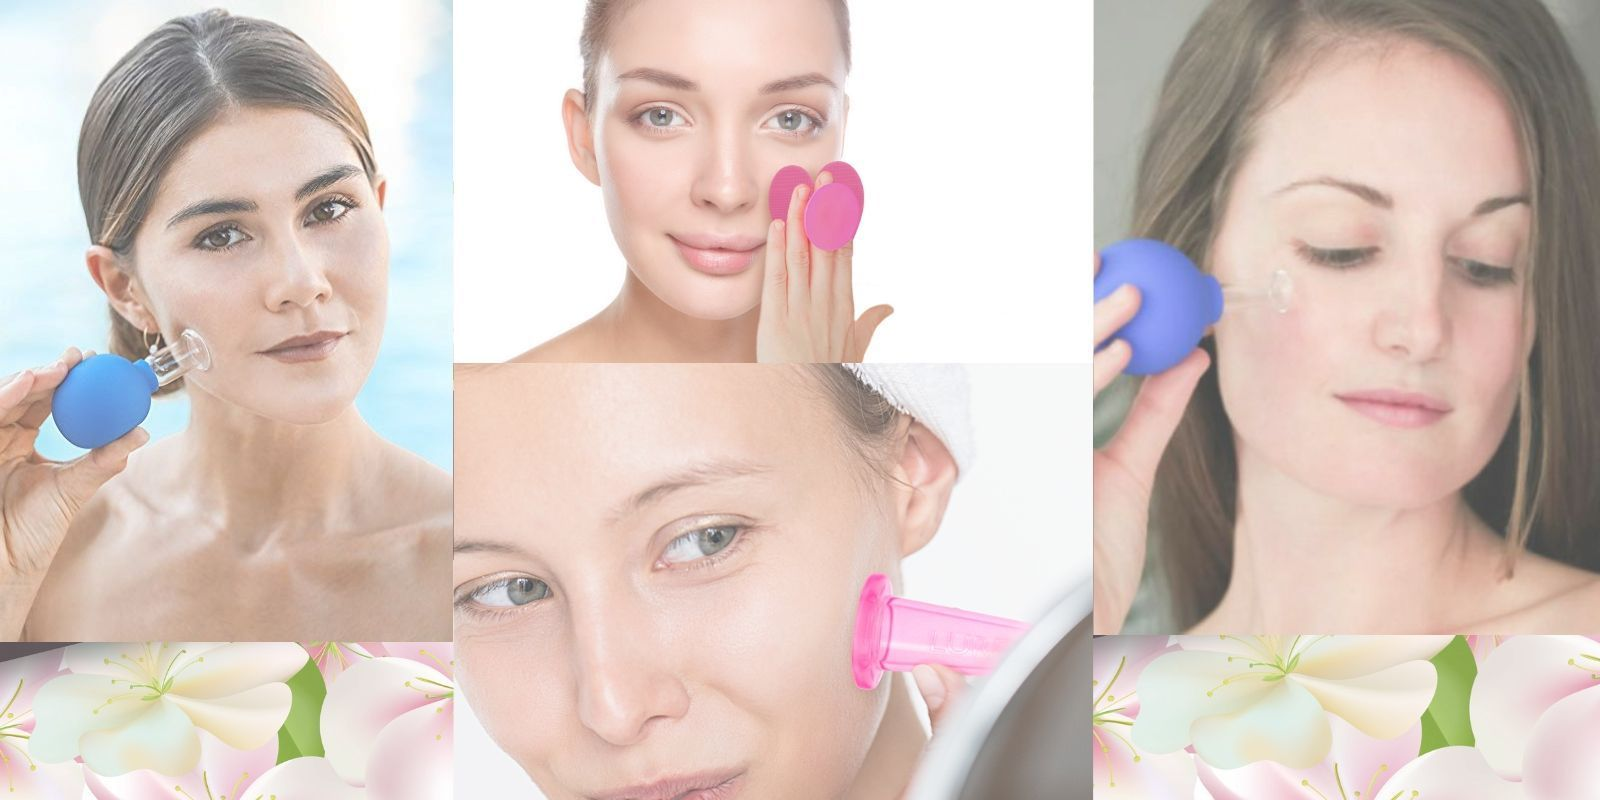 Benefits of Face Cupping for Facial Rejuvenation - Lure Essentials